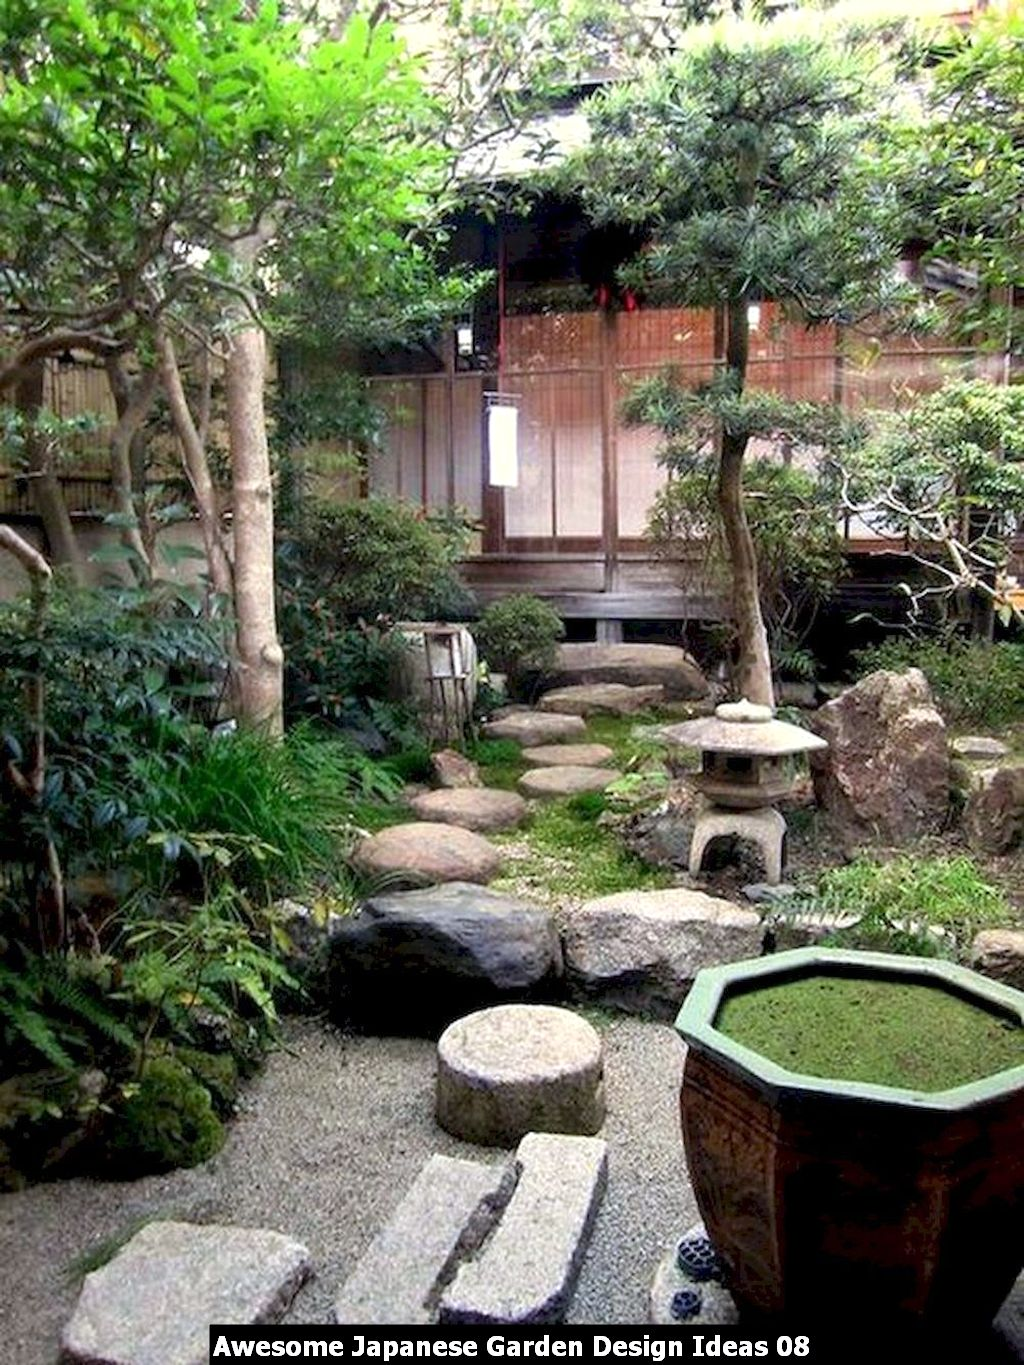 Awesome Japanese Garden Design Ideas 08